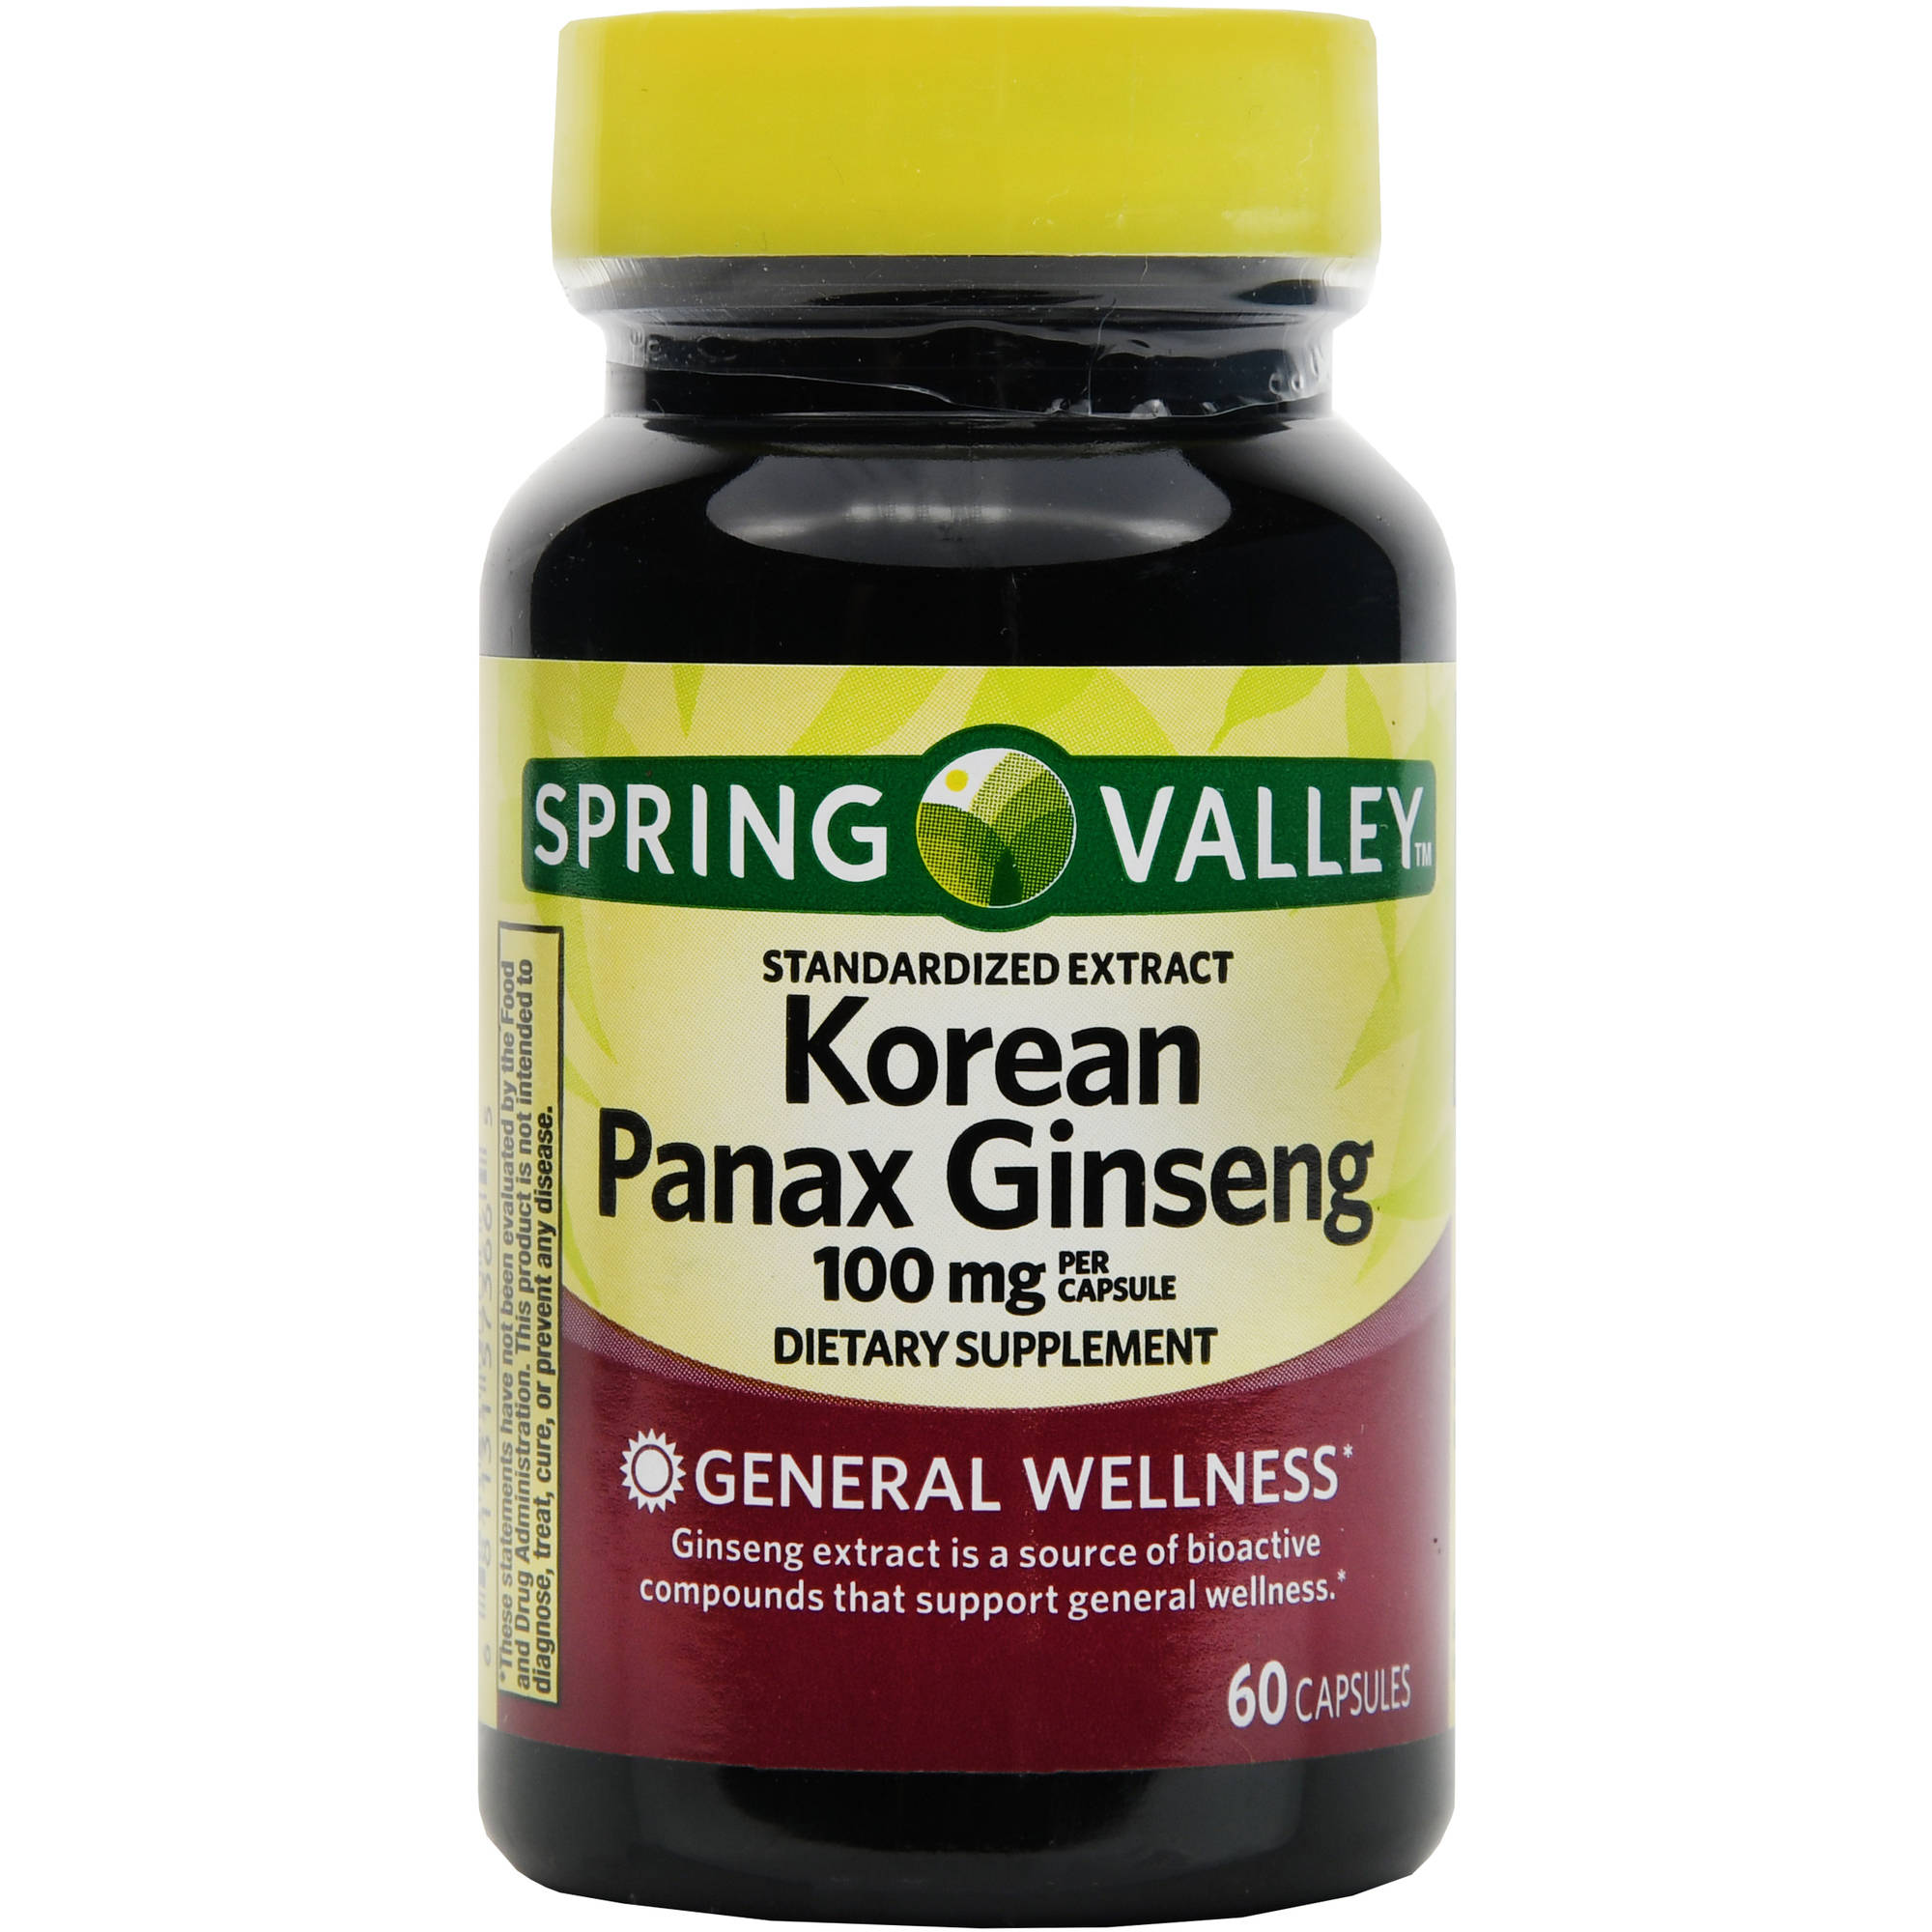 Spring Valley Korean Panax Ginseng Extract Capsules 100